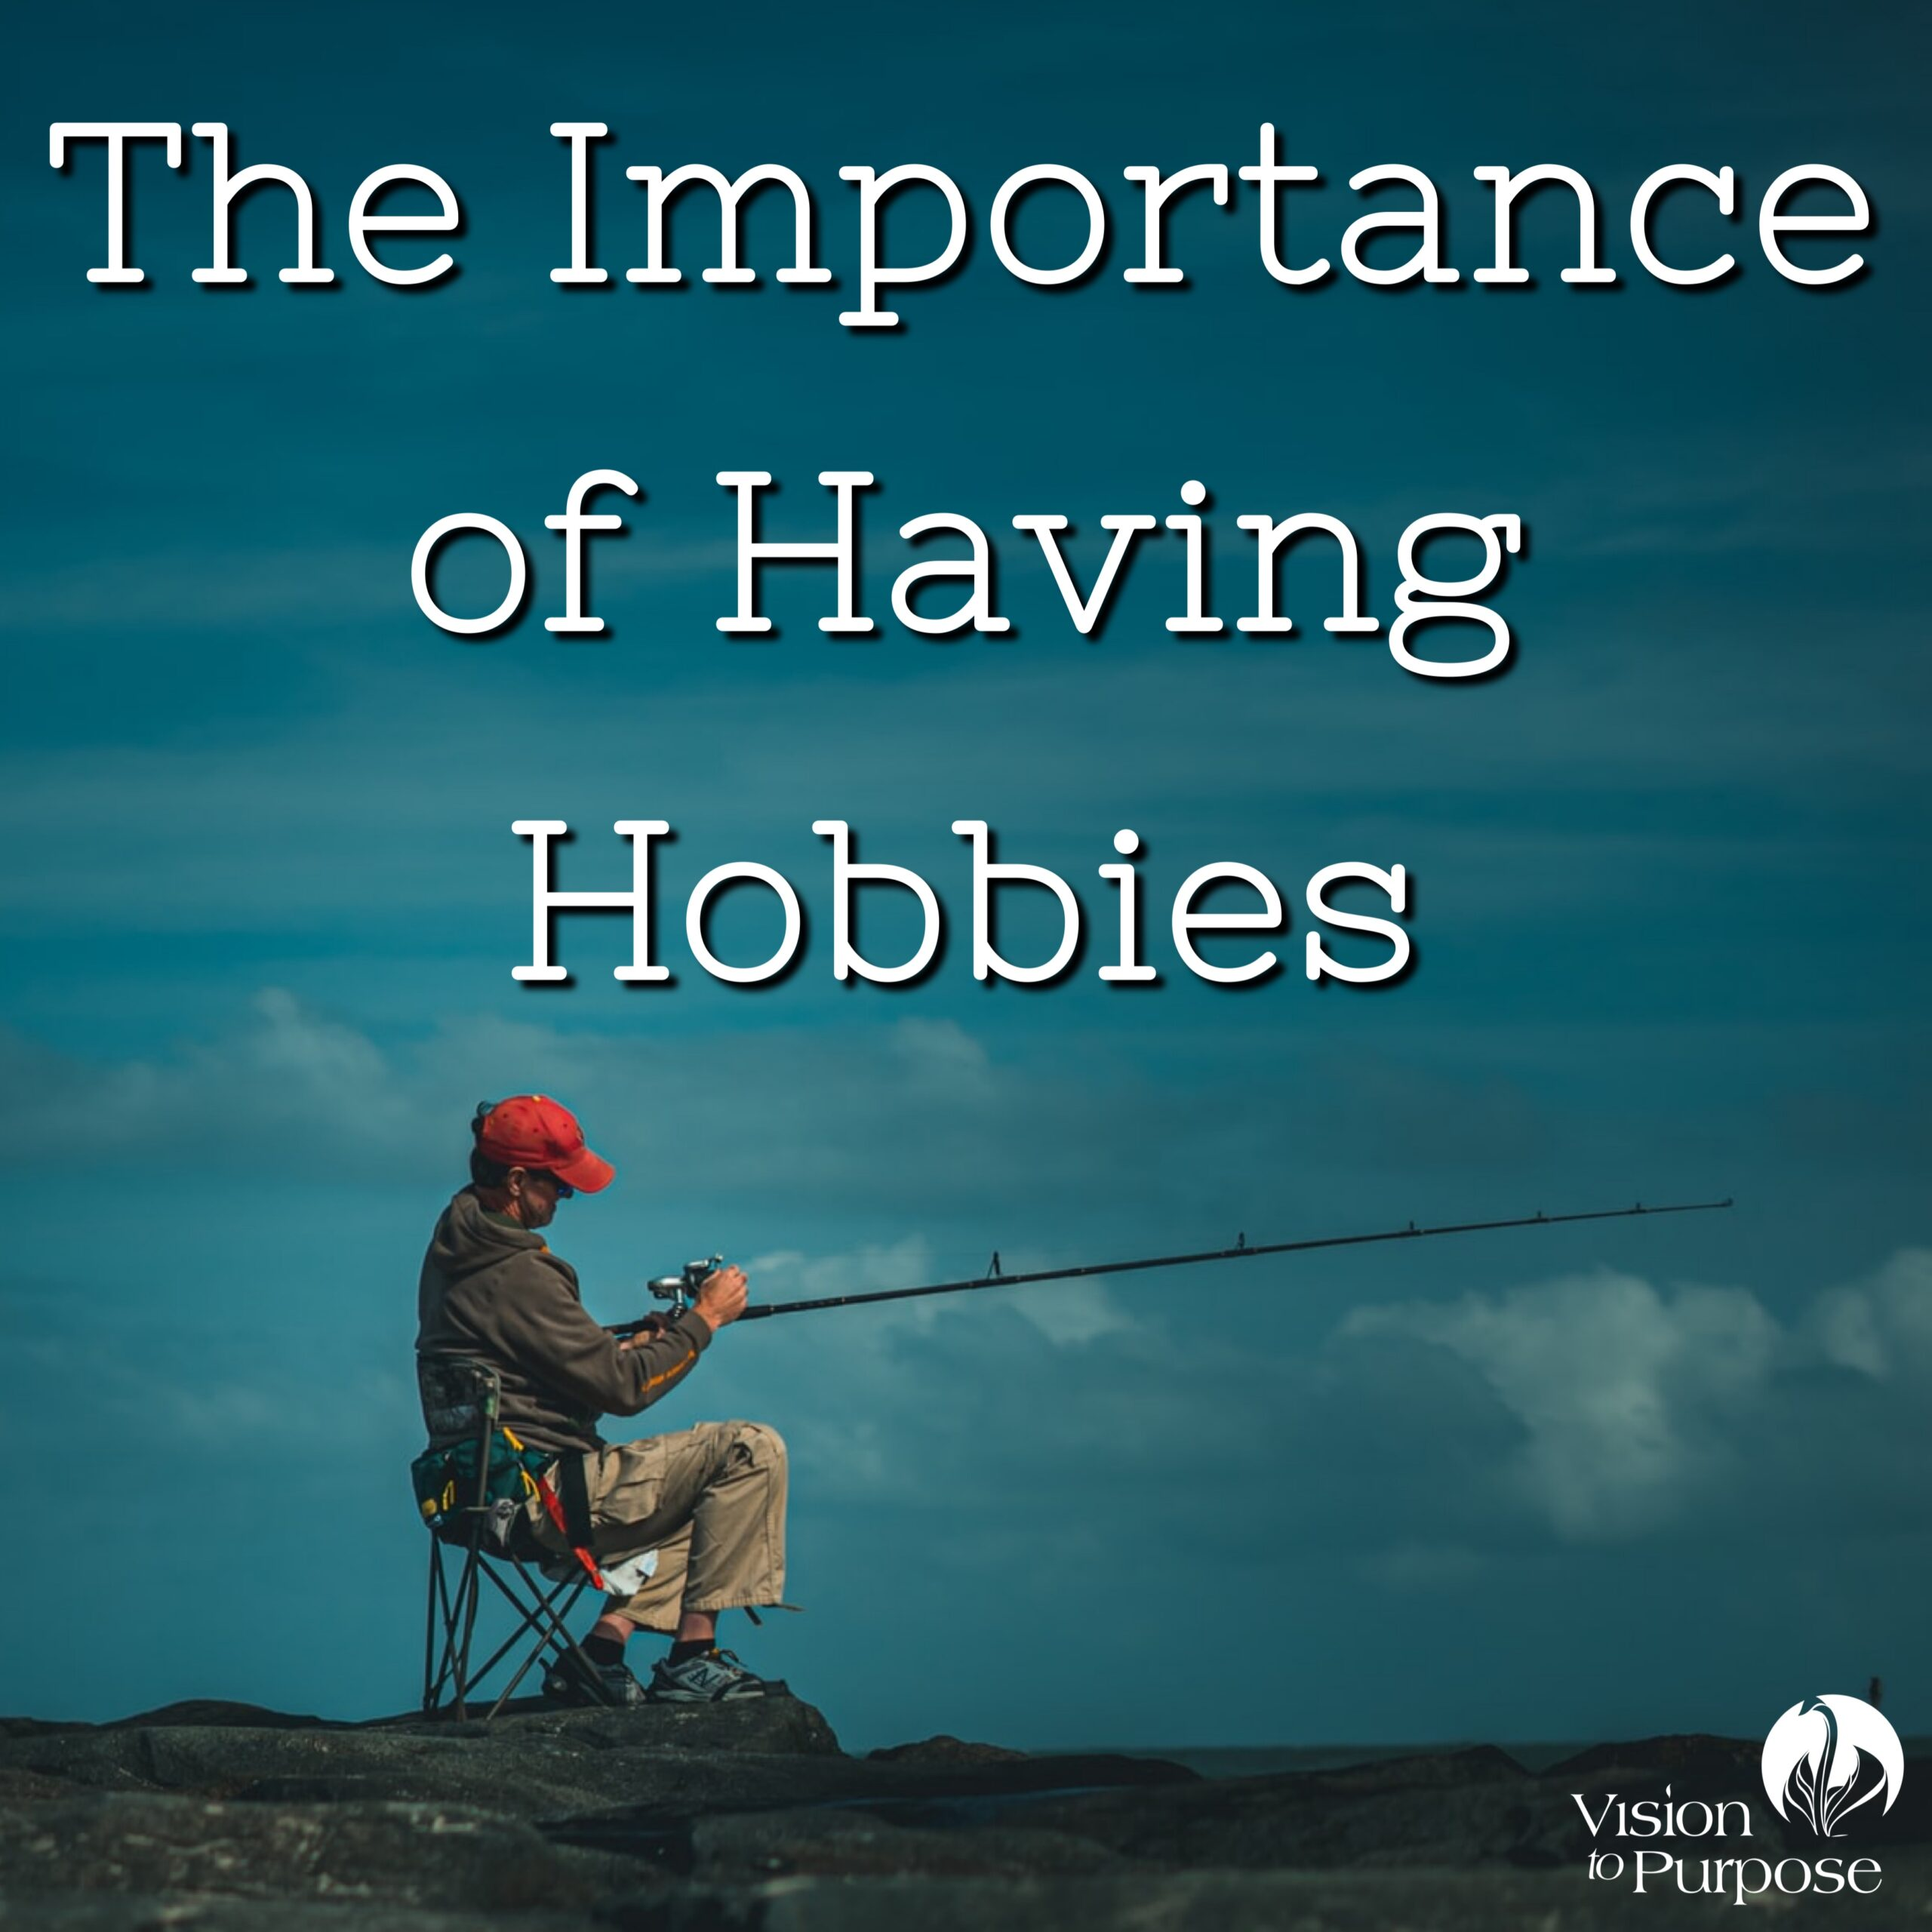 The Importance of Having Hobbies